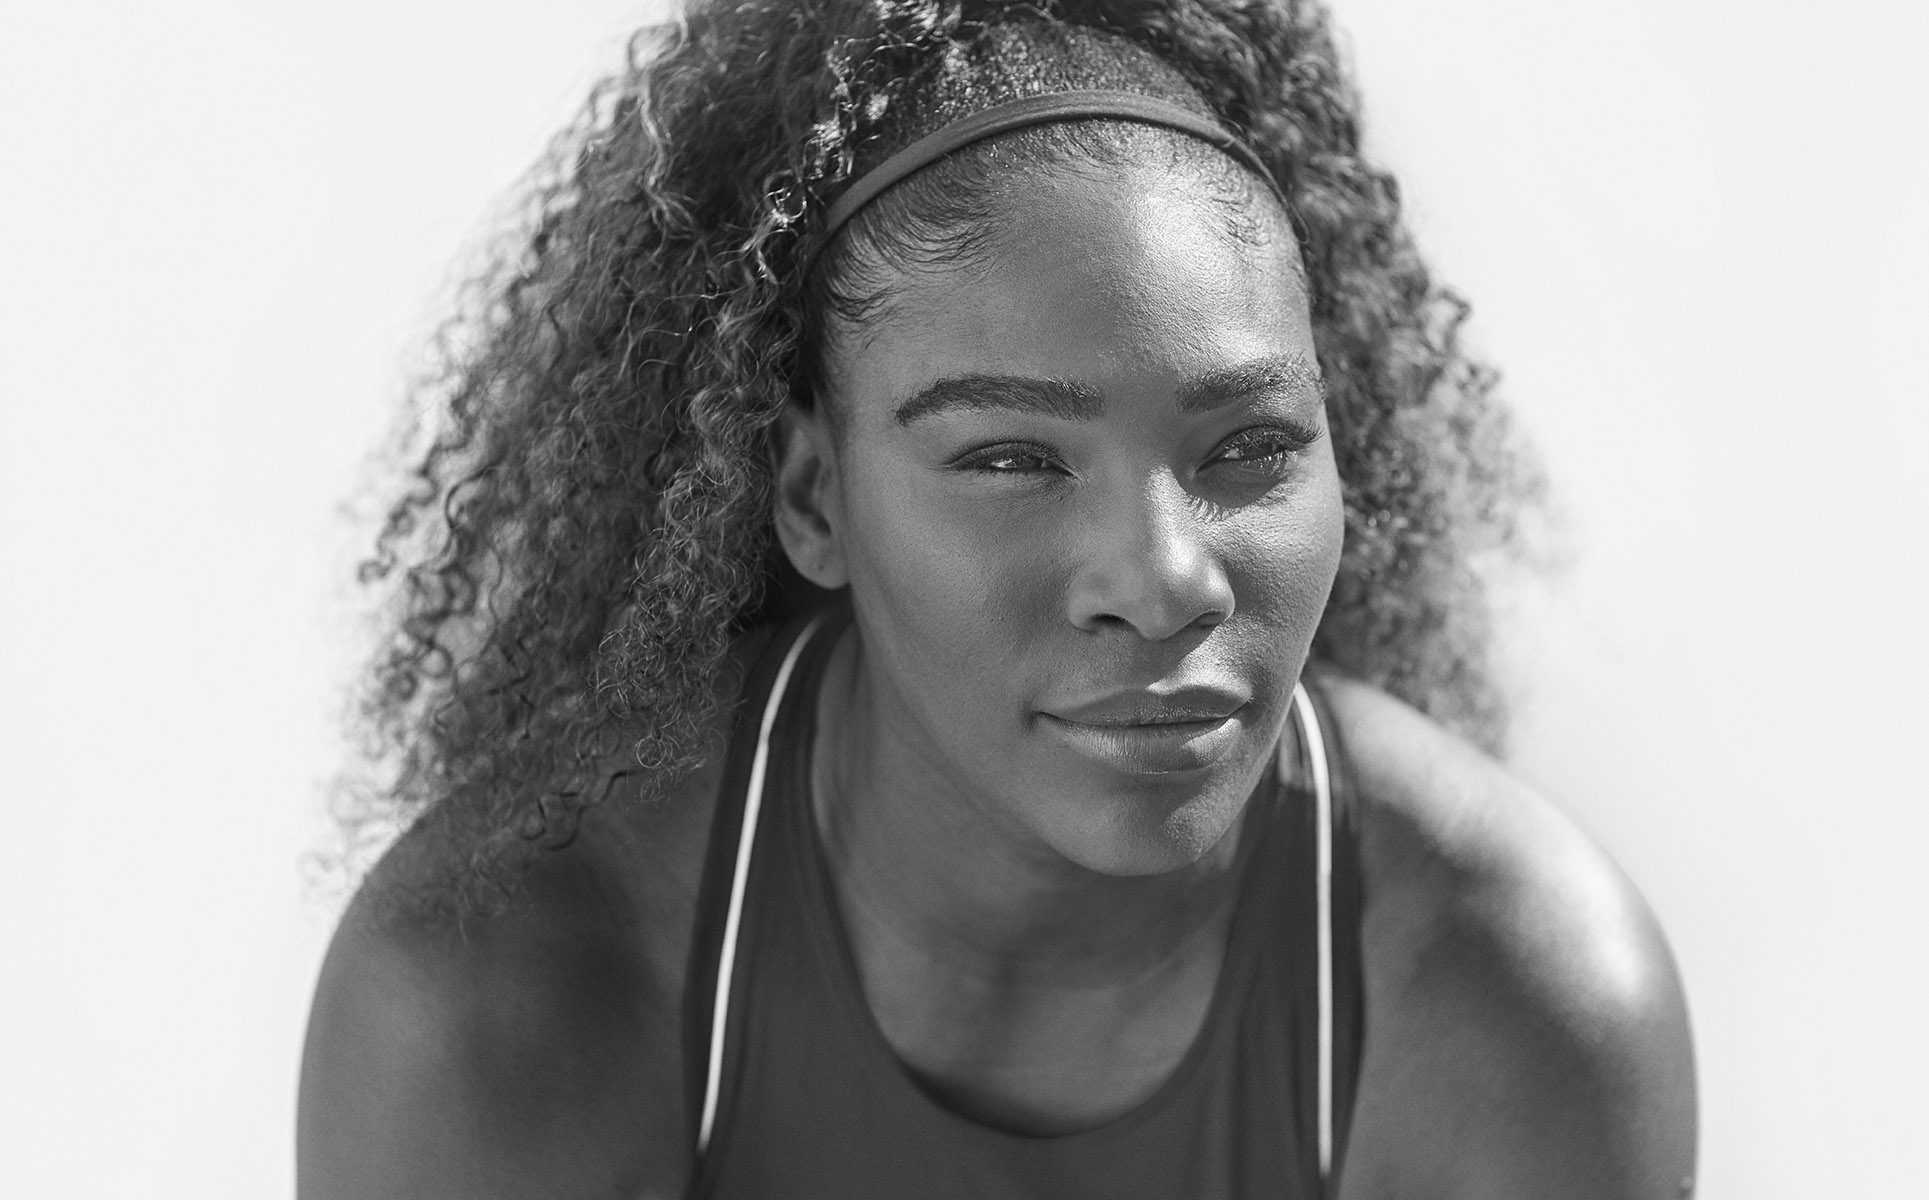 Serena Williams, Axa campaign